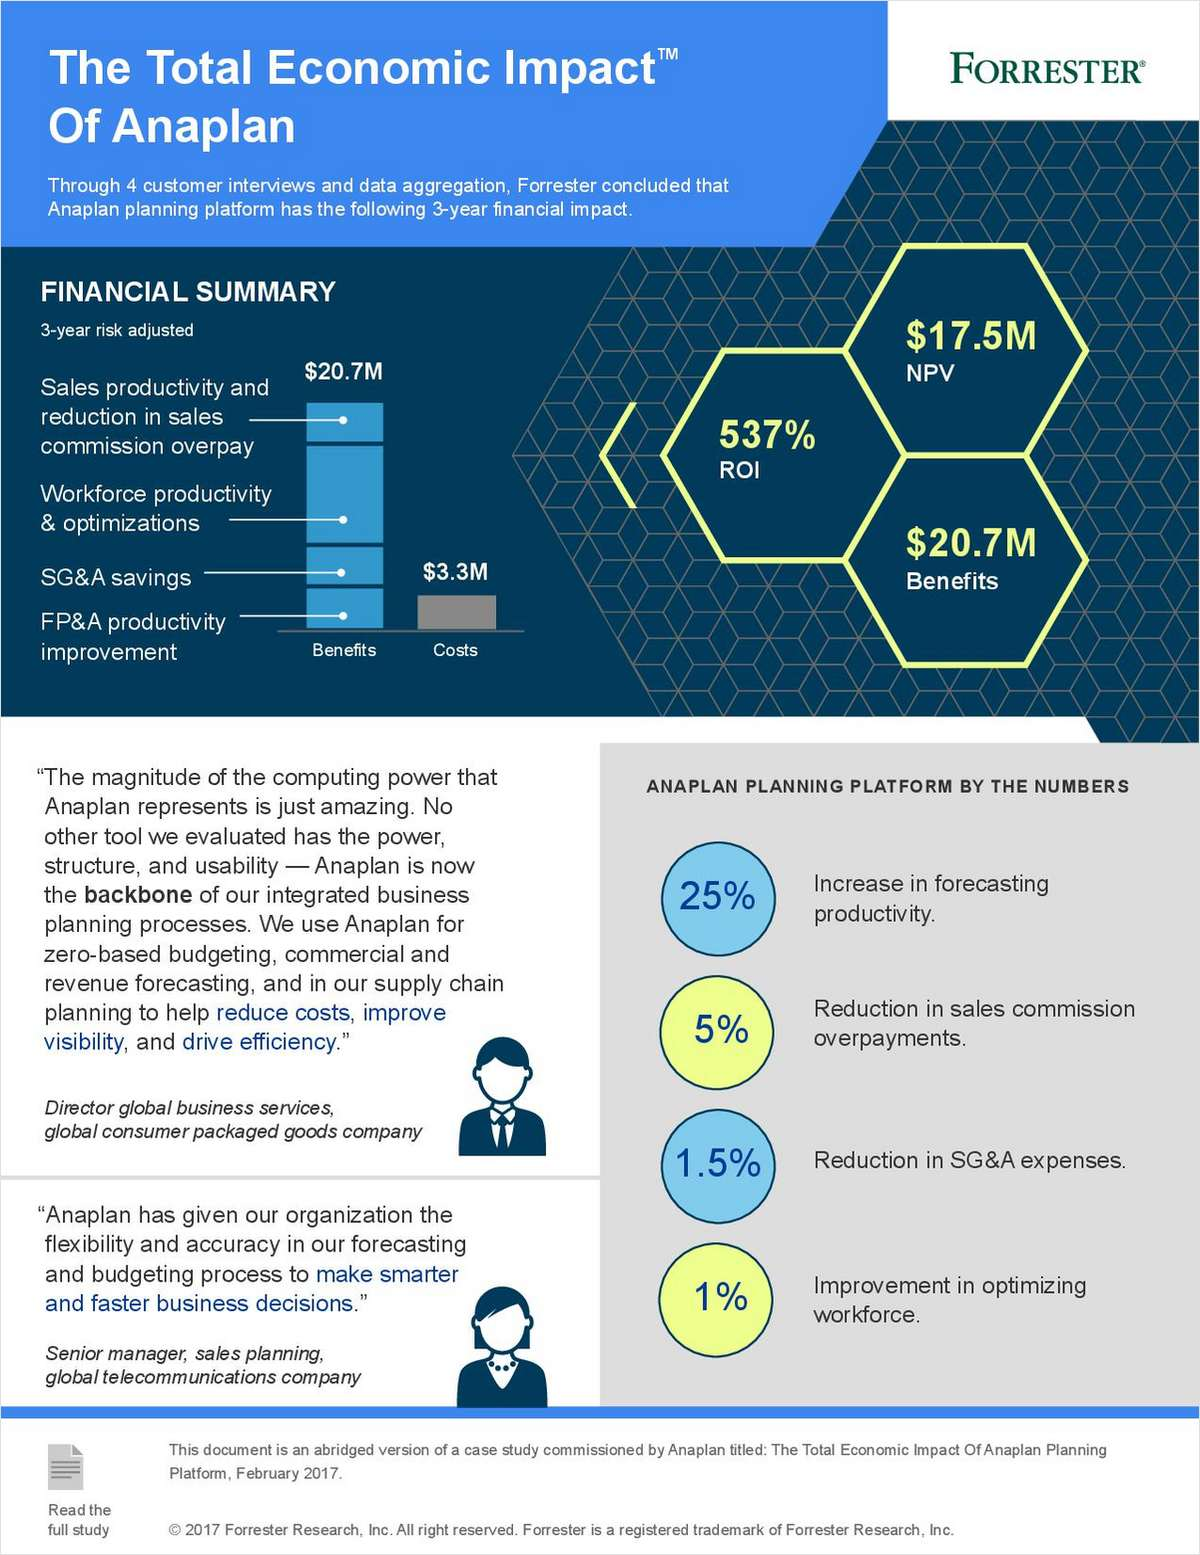 Forrester: The Total Economic Impact of Anaplan, Free Anaplan, Inc on